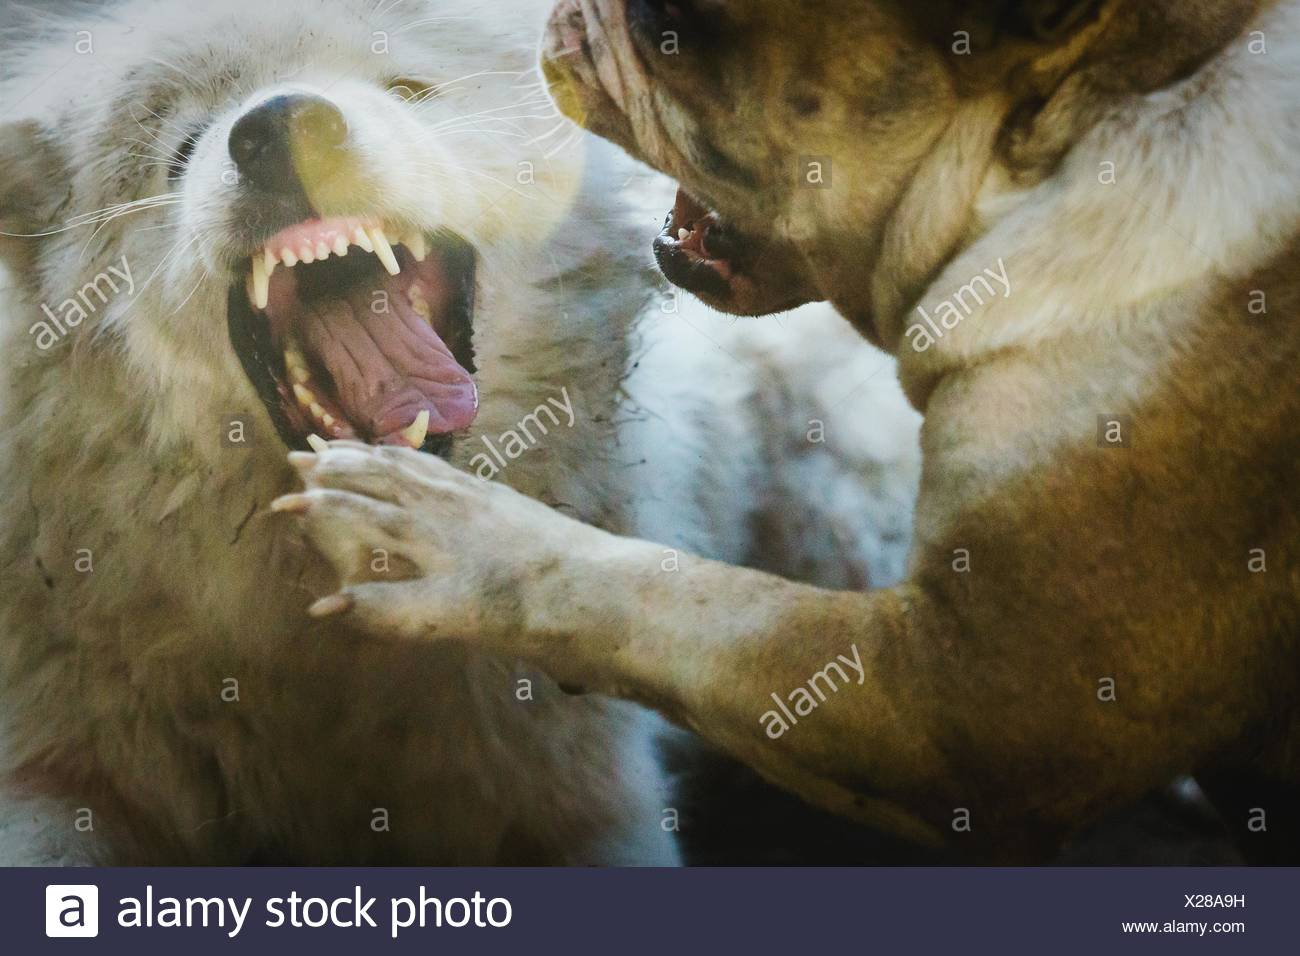 Angry Dogs Fighting Outdoors - Stock Image